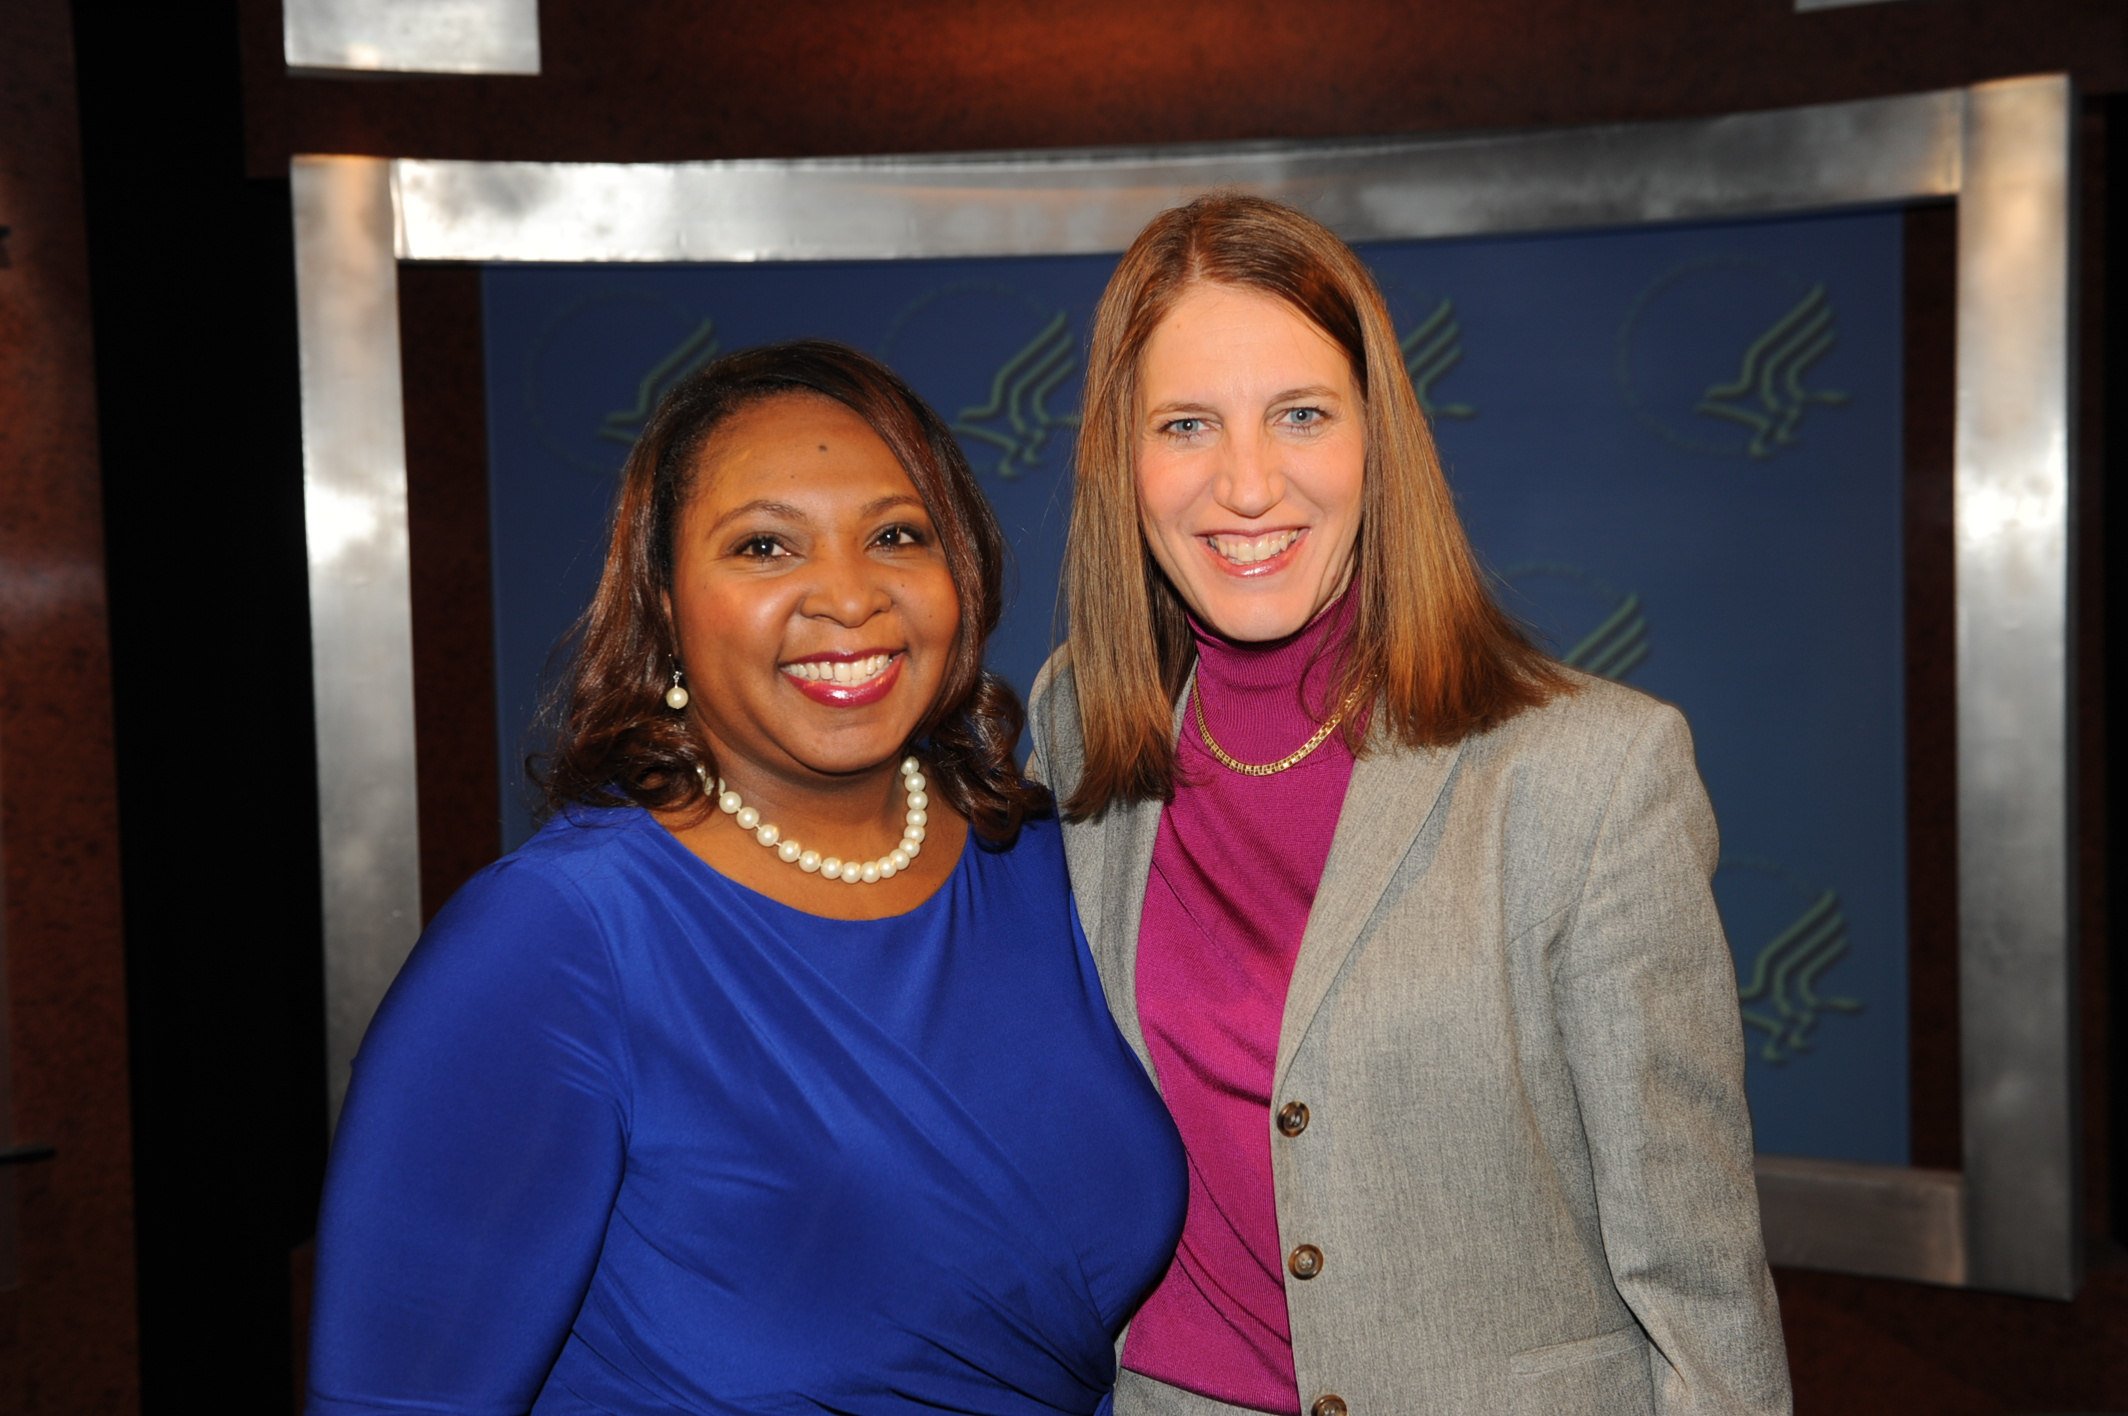 Meredith and DHHS Secretary Sylvia Matthews Burwell